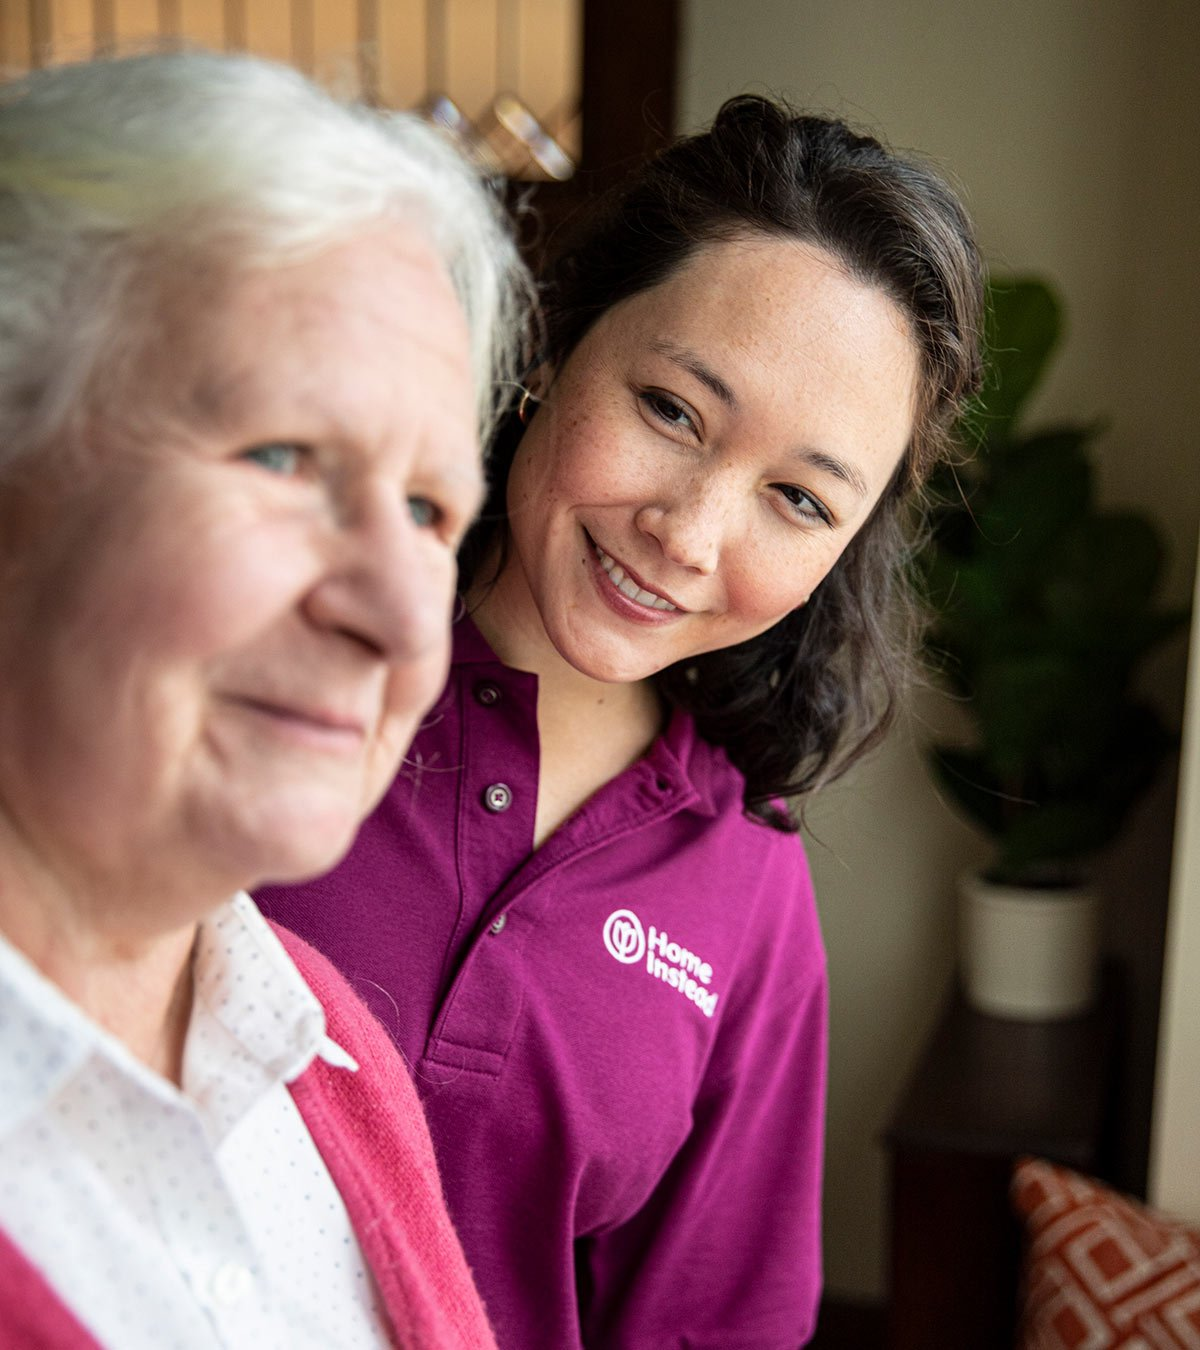 Home Instead CAREGiver smiling and looking at senior performing elder care